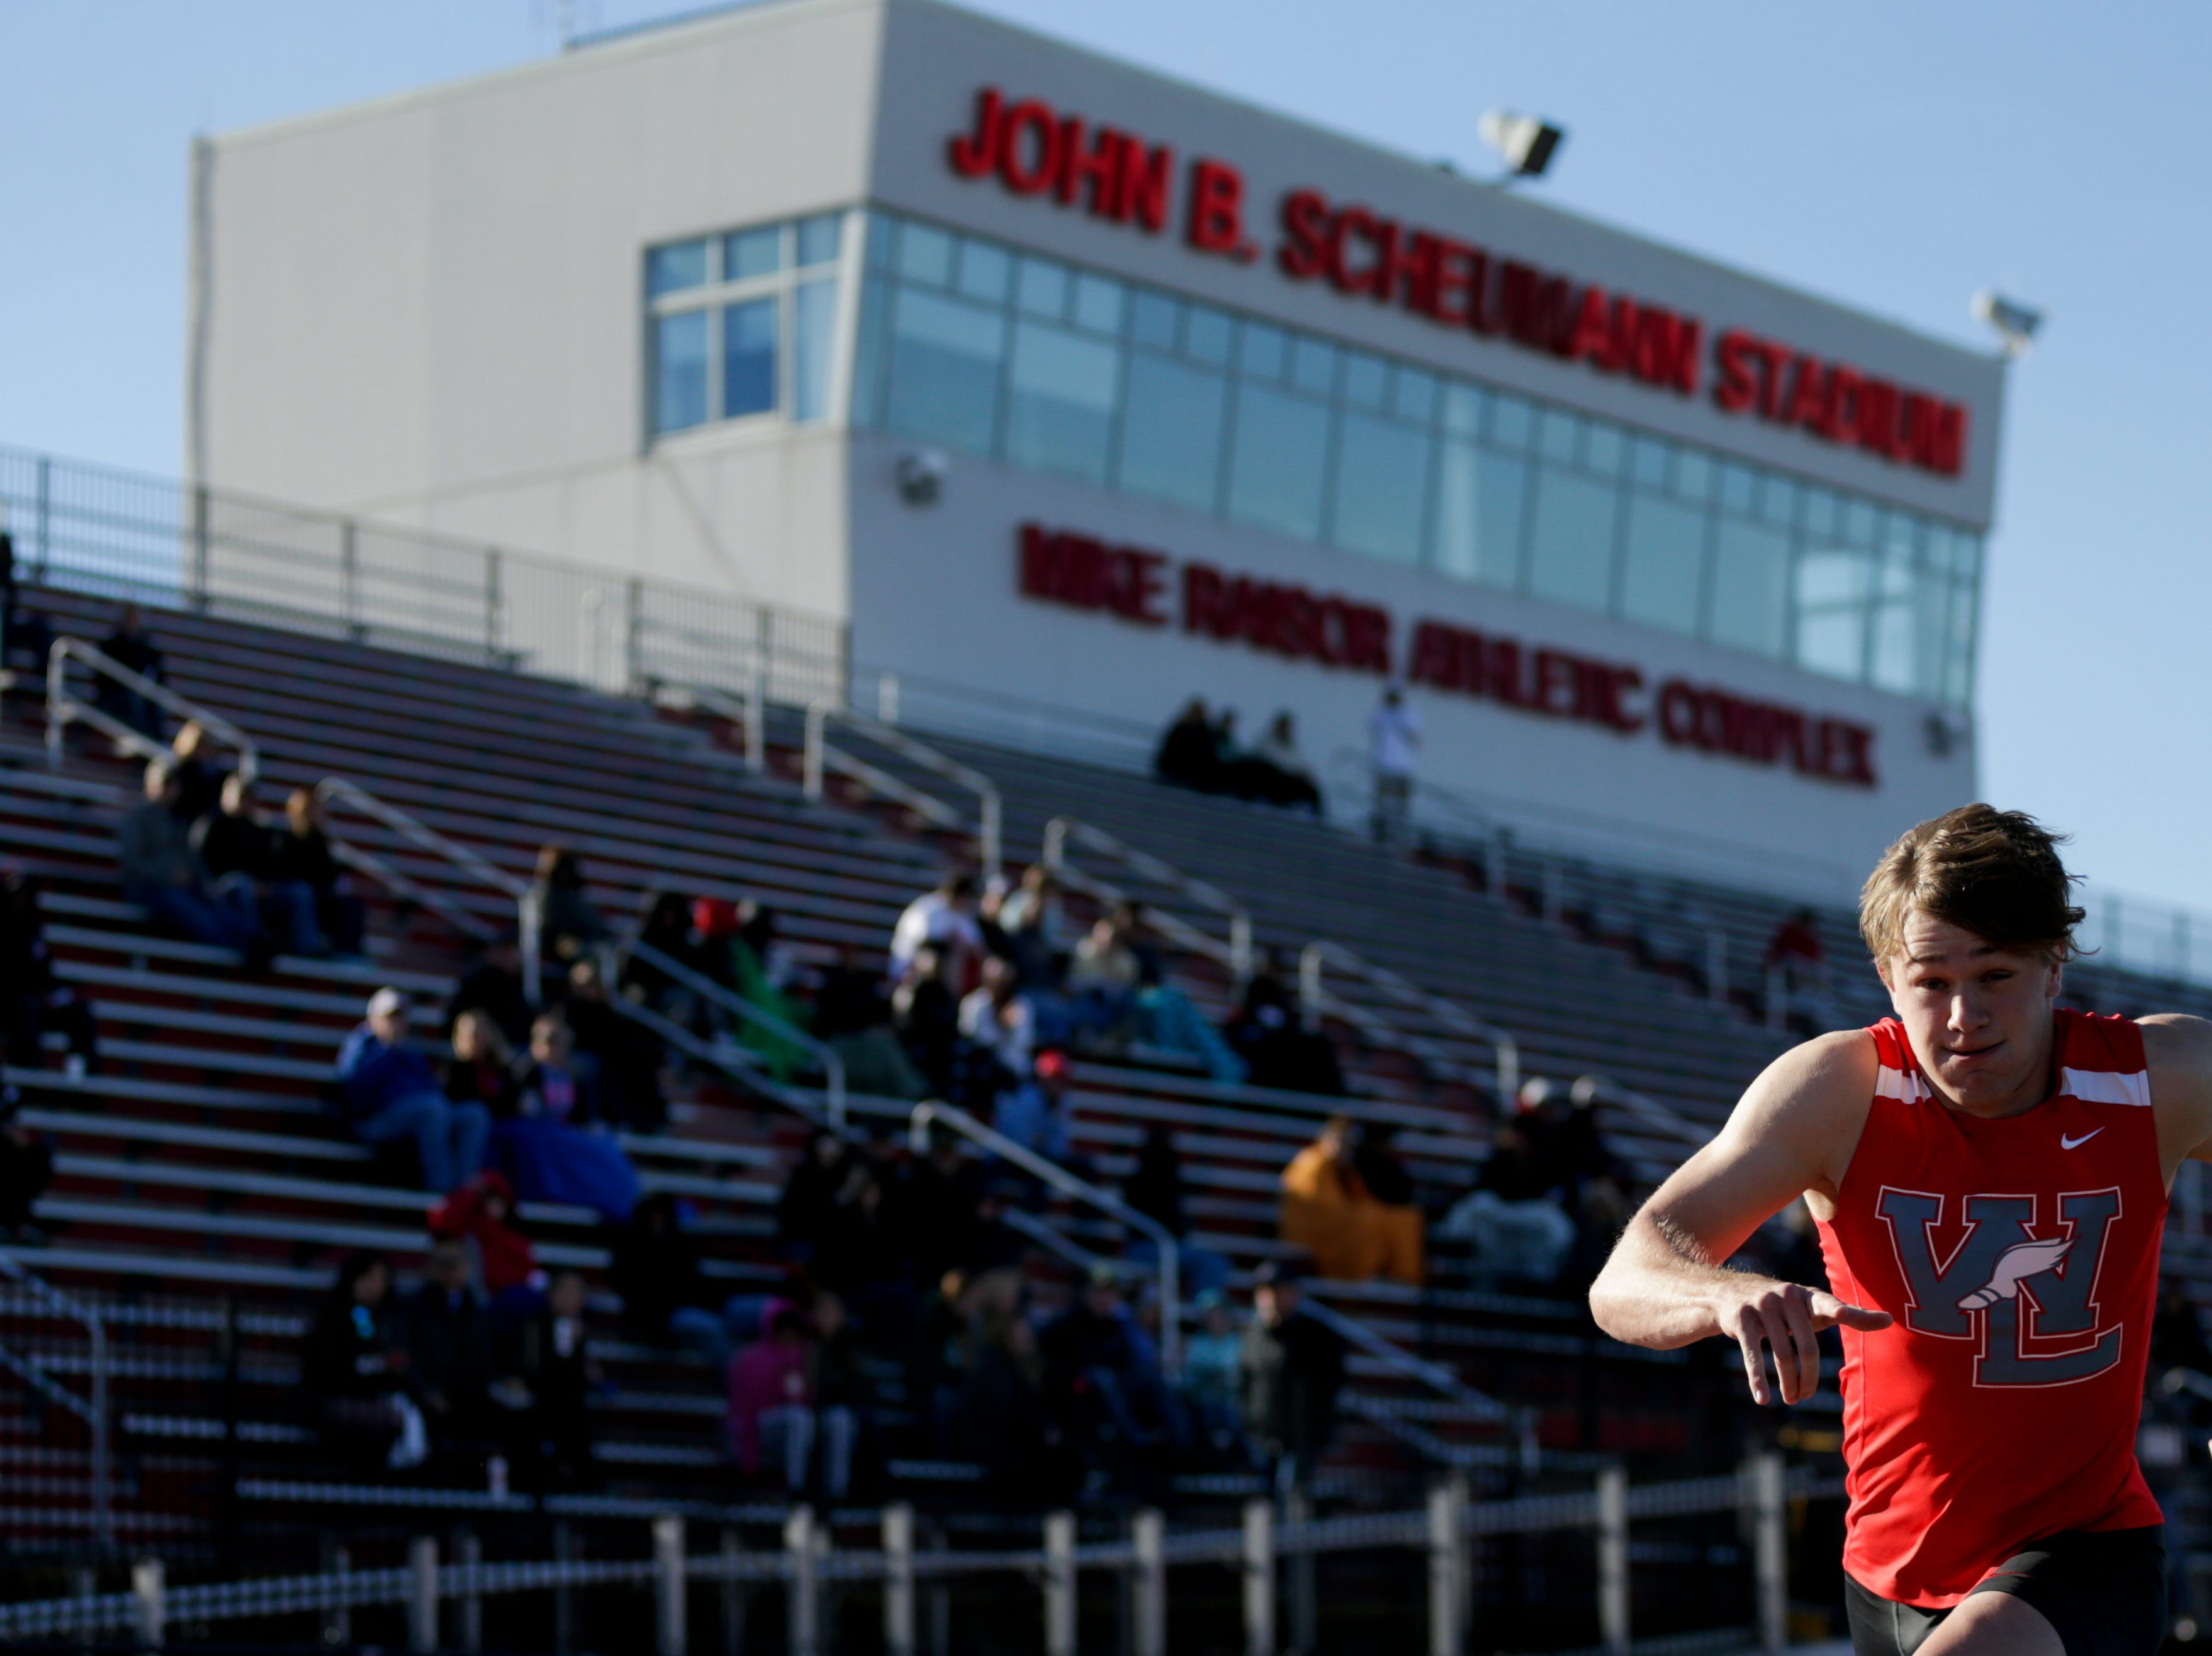 West Lafayette's Noah Stenberg competes in the men's 400 meter dash during the 2019 Sprinters Showcase, Friday, April 12, 2019, at Lafayette Jeff High School in Lafayette.